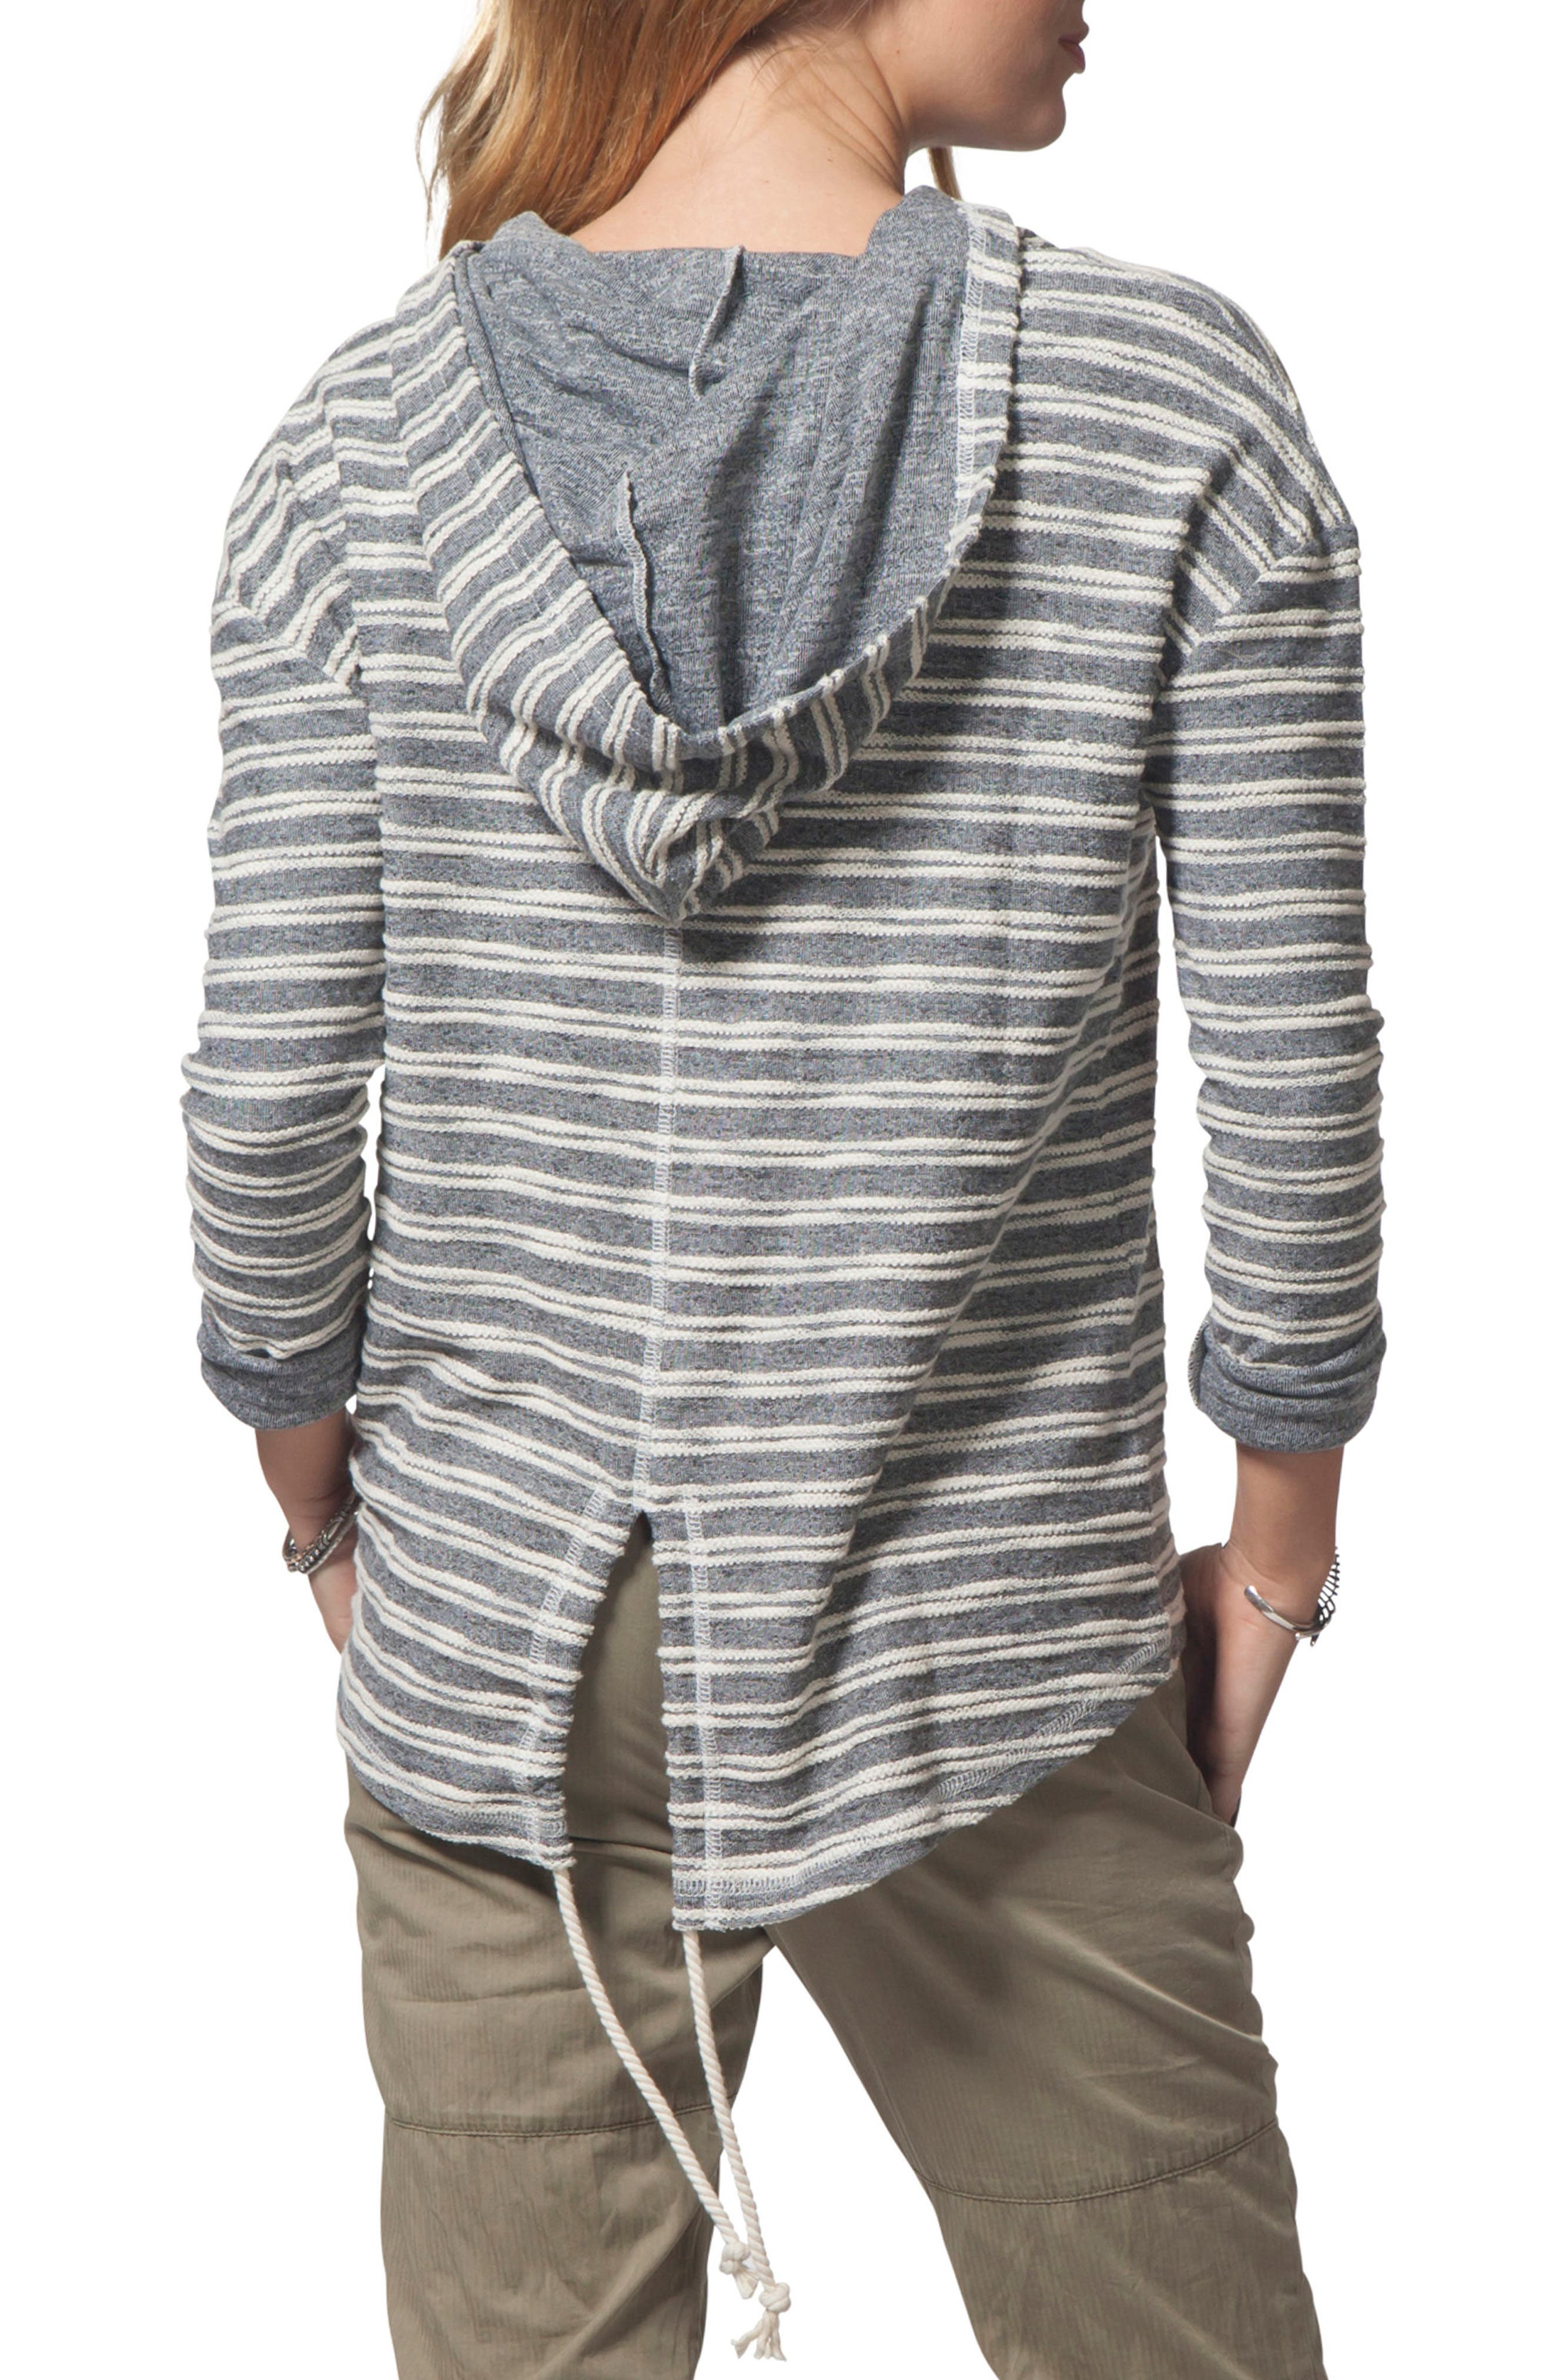 Next Move Stripe Hooded Pullover,                             Alternate thumbnail 2, color,                             001